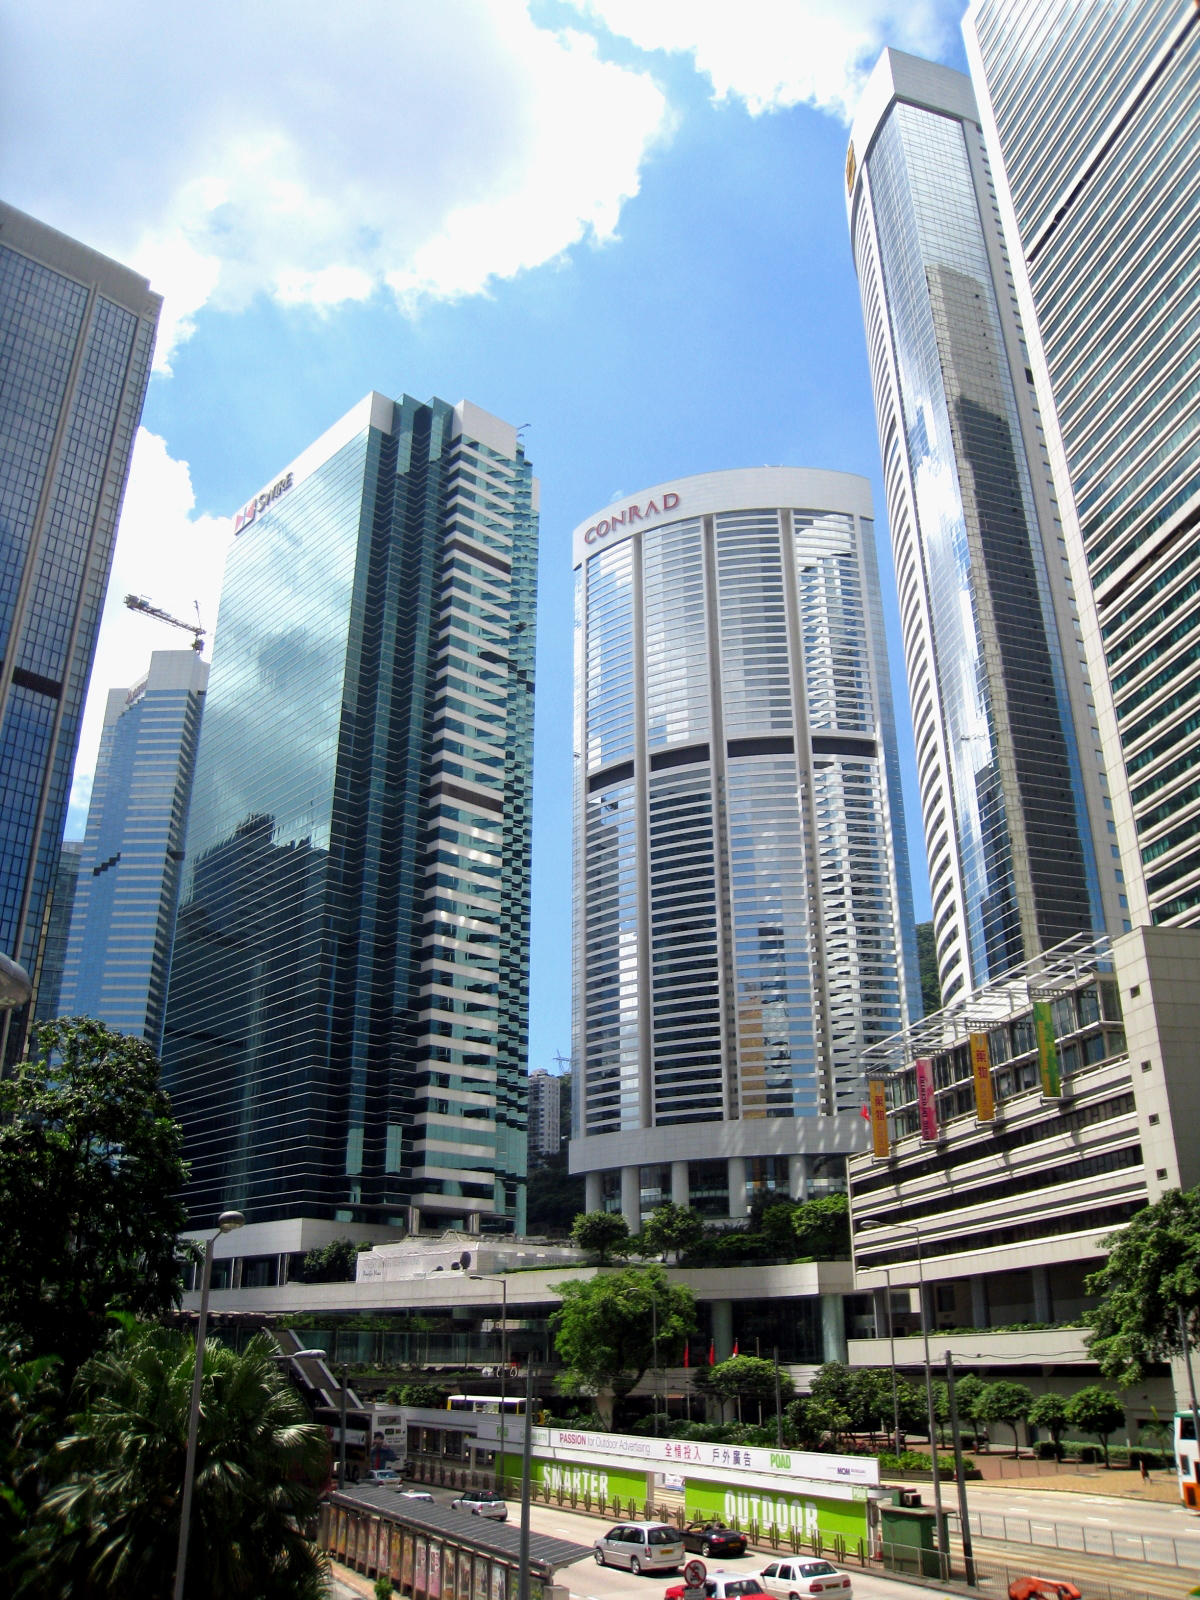 hong kong pacific place admiralty hk queensway floating wikipedia conrad hotels wikimedia magnificent island across credit